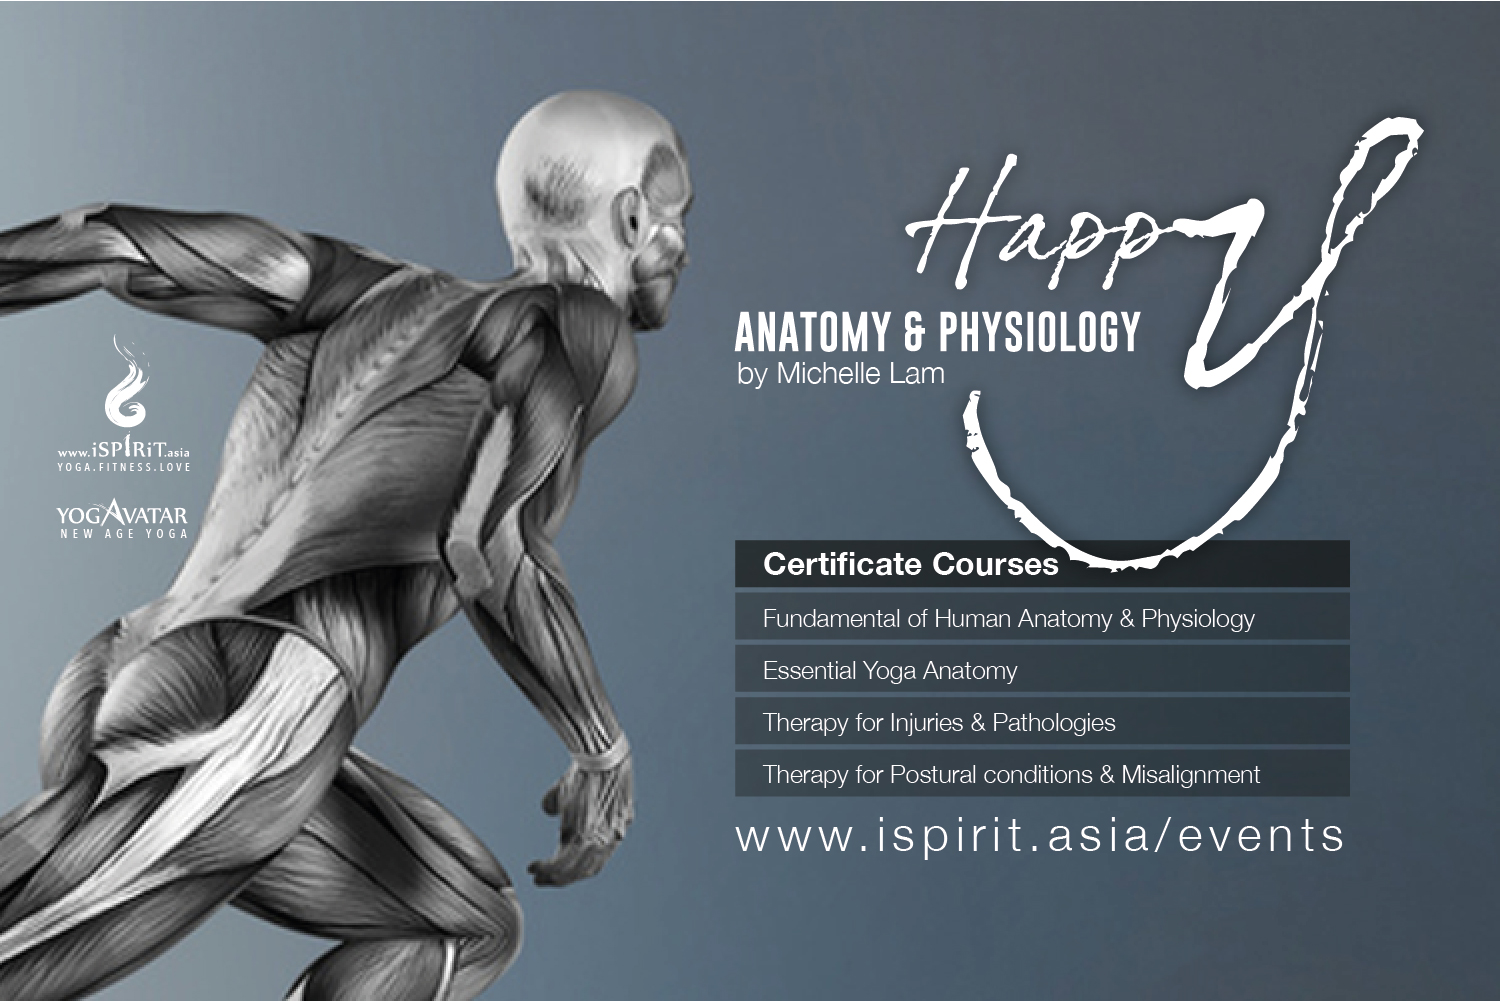 Happy Anatomy Physiology Certificate Courses By Michelle Lam